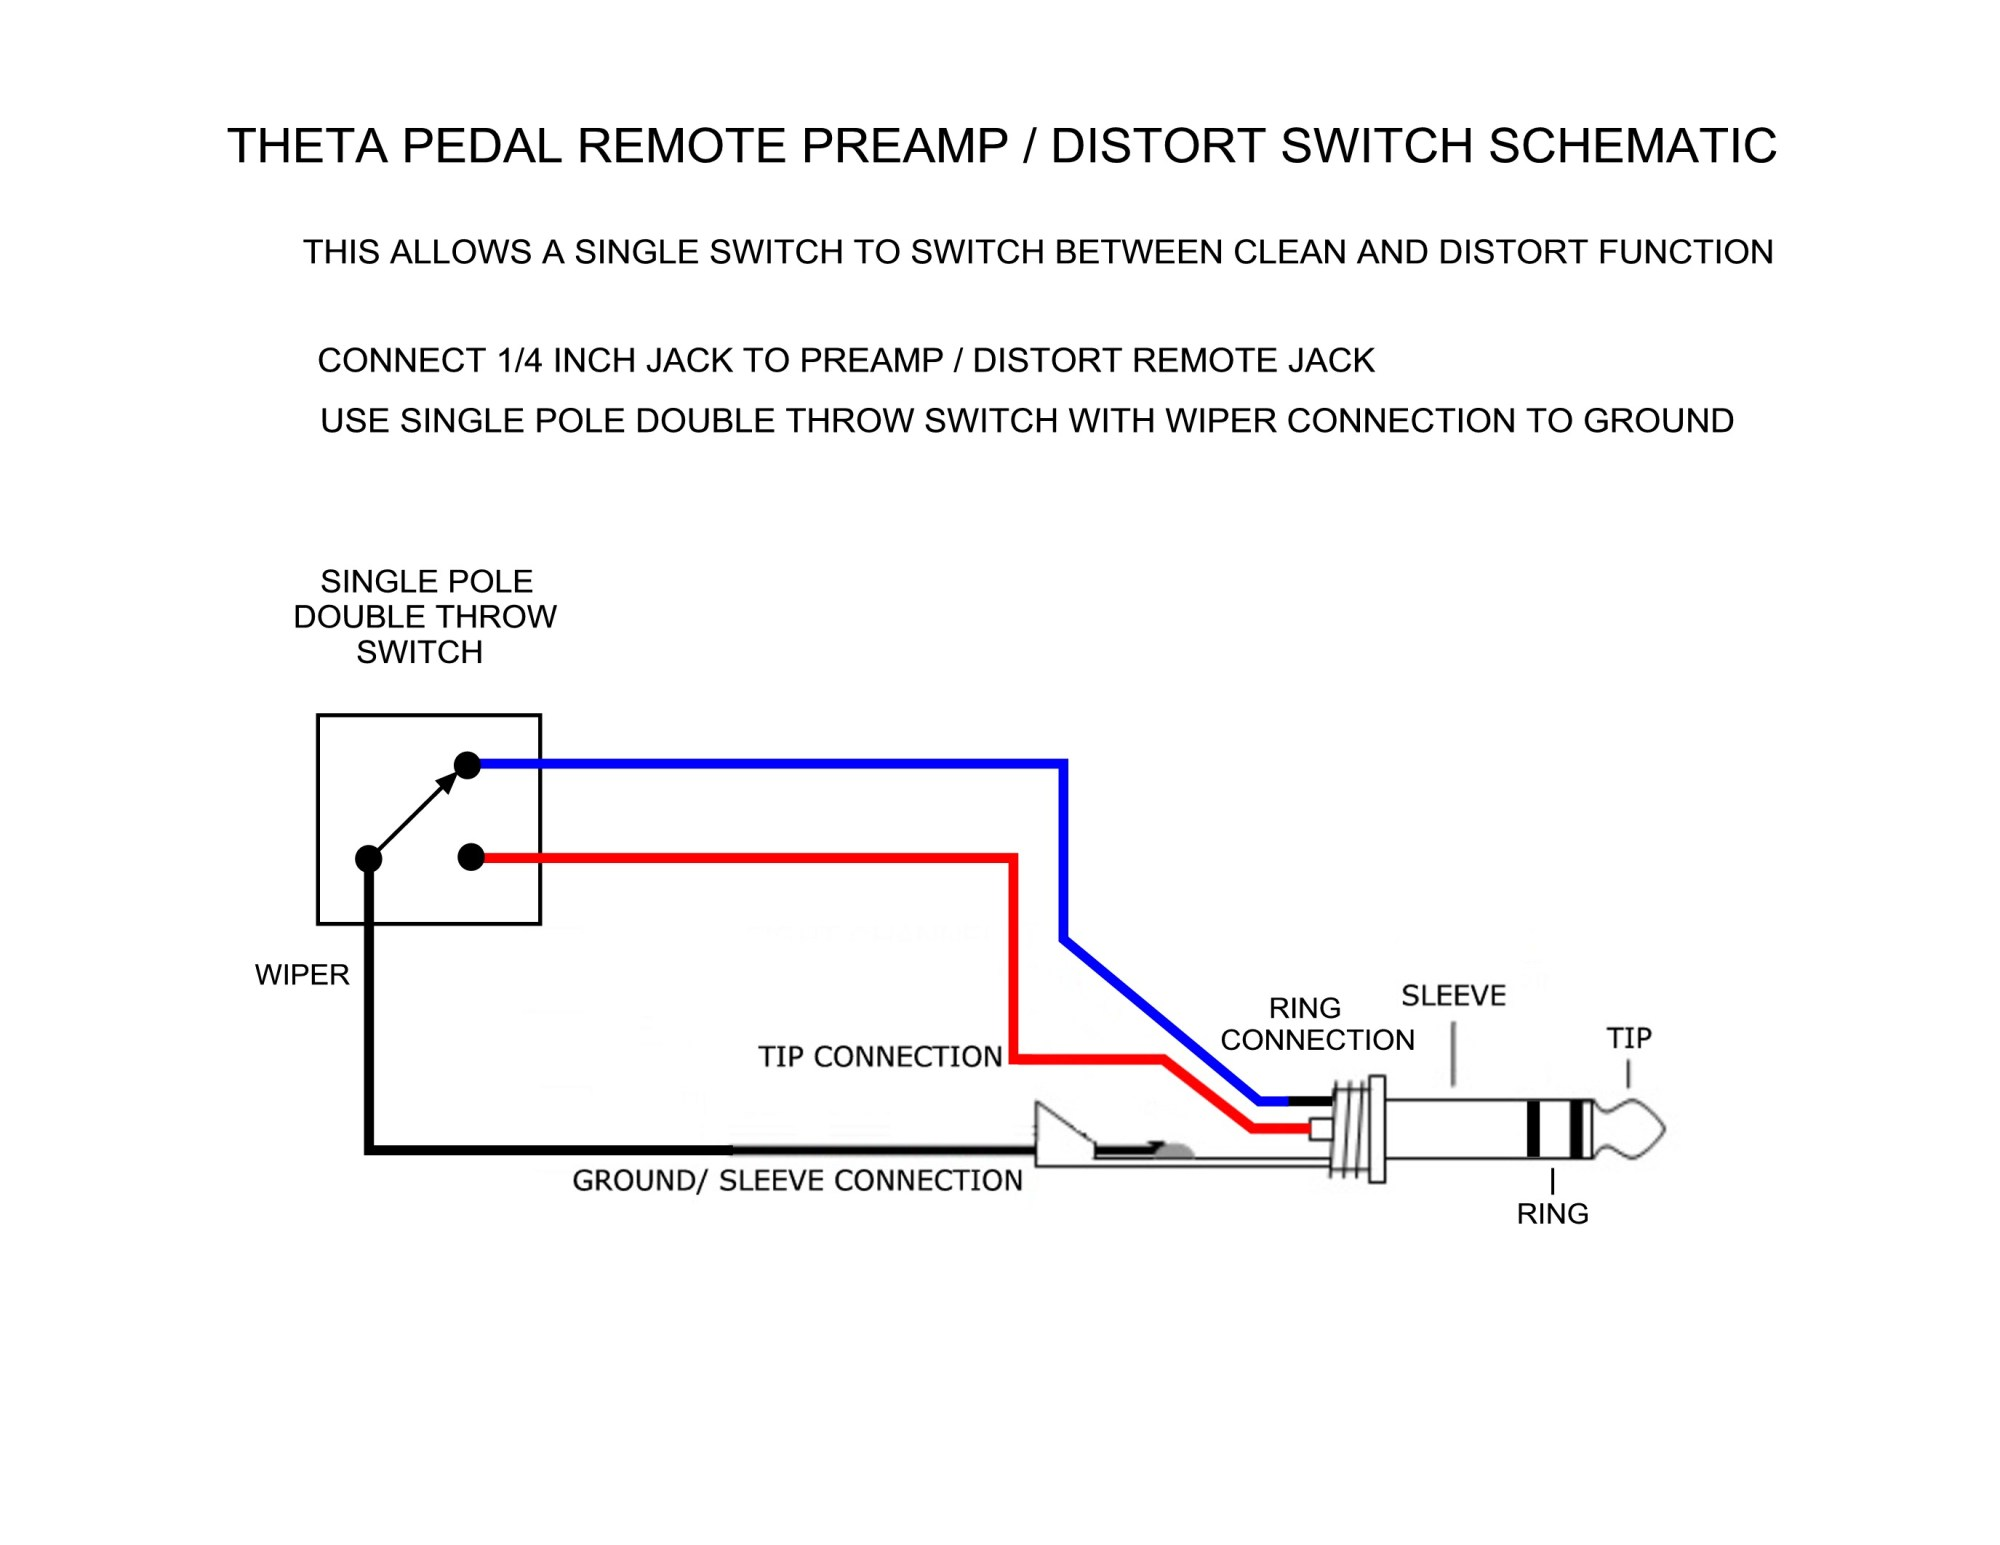 hight resolution of theta pedal remote switch schematic